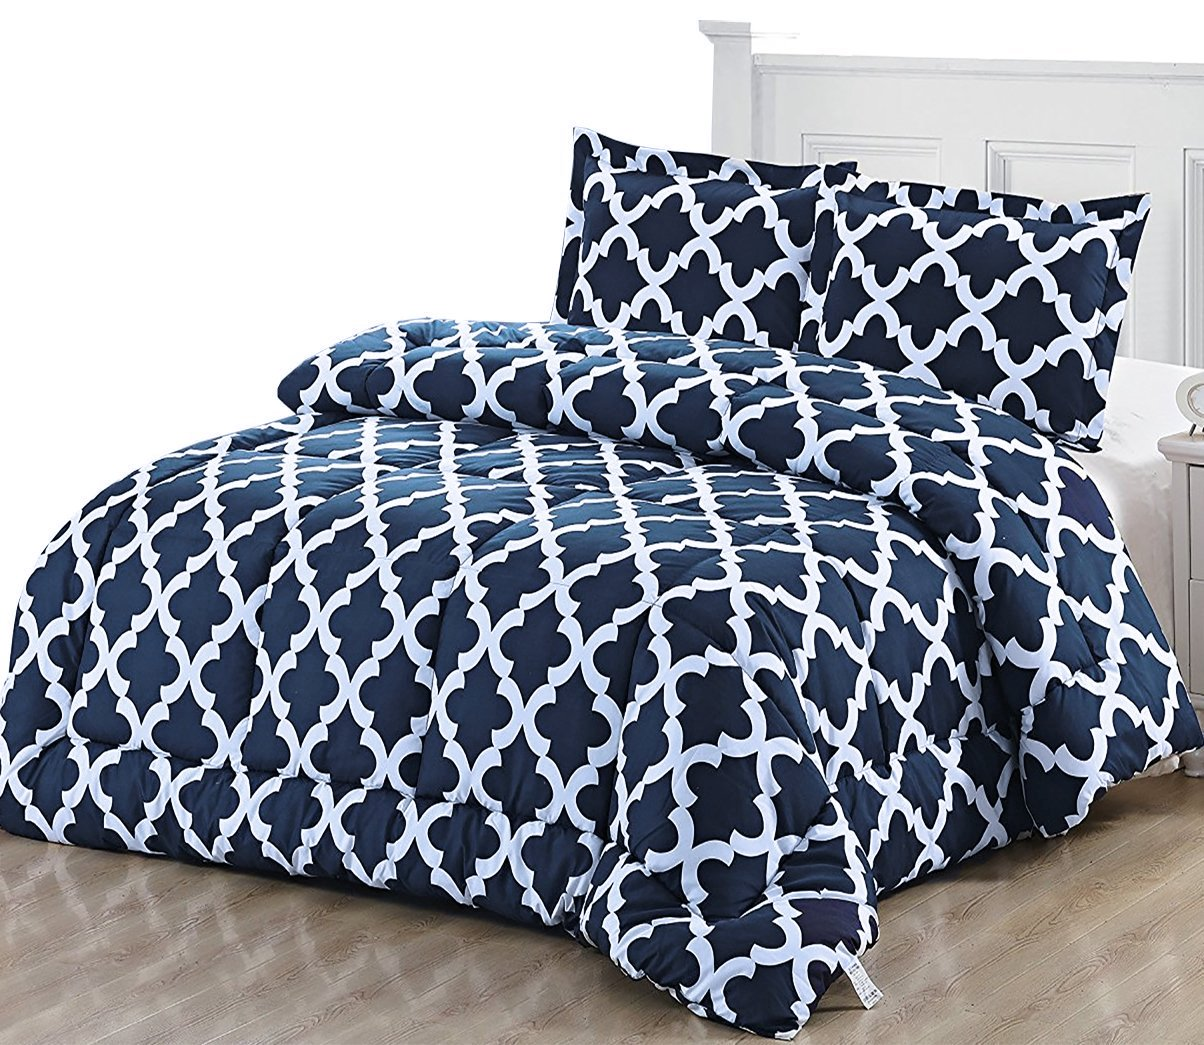 Printed Comforter Set With 2 Pillow Shams Brushed